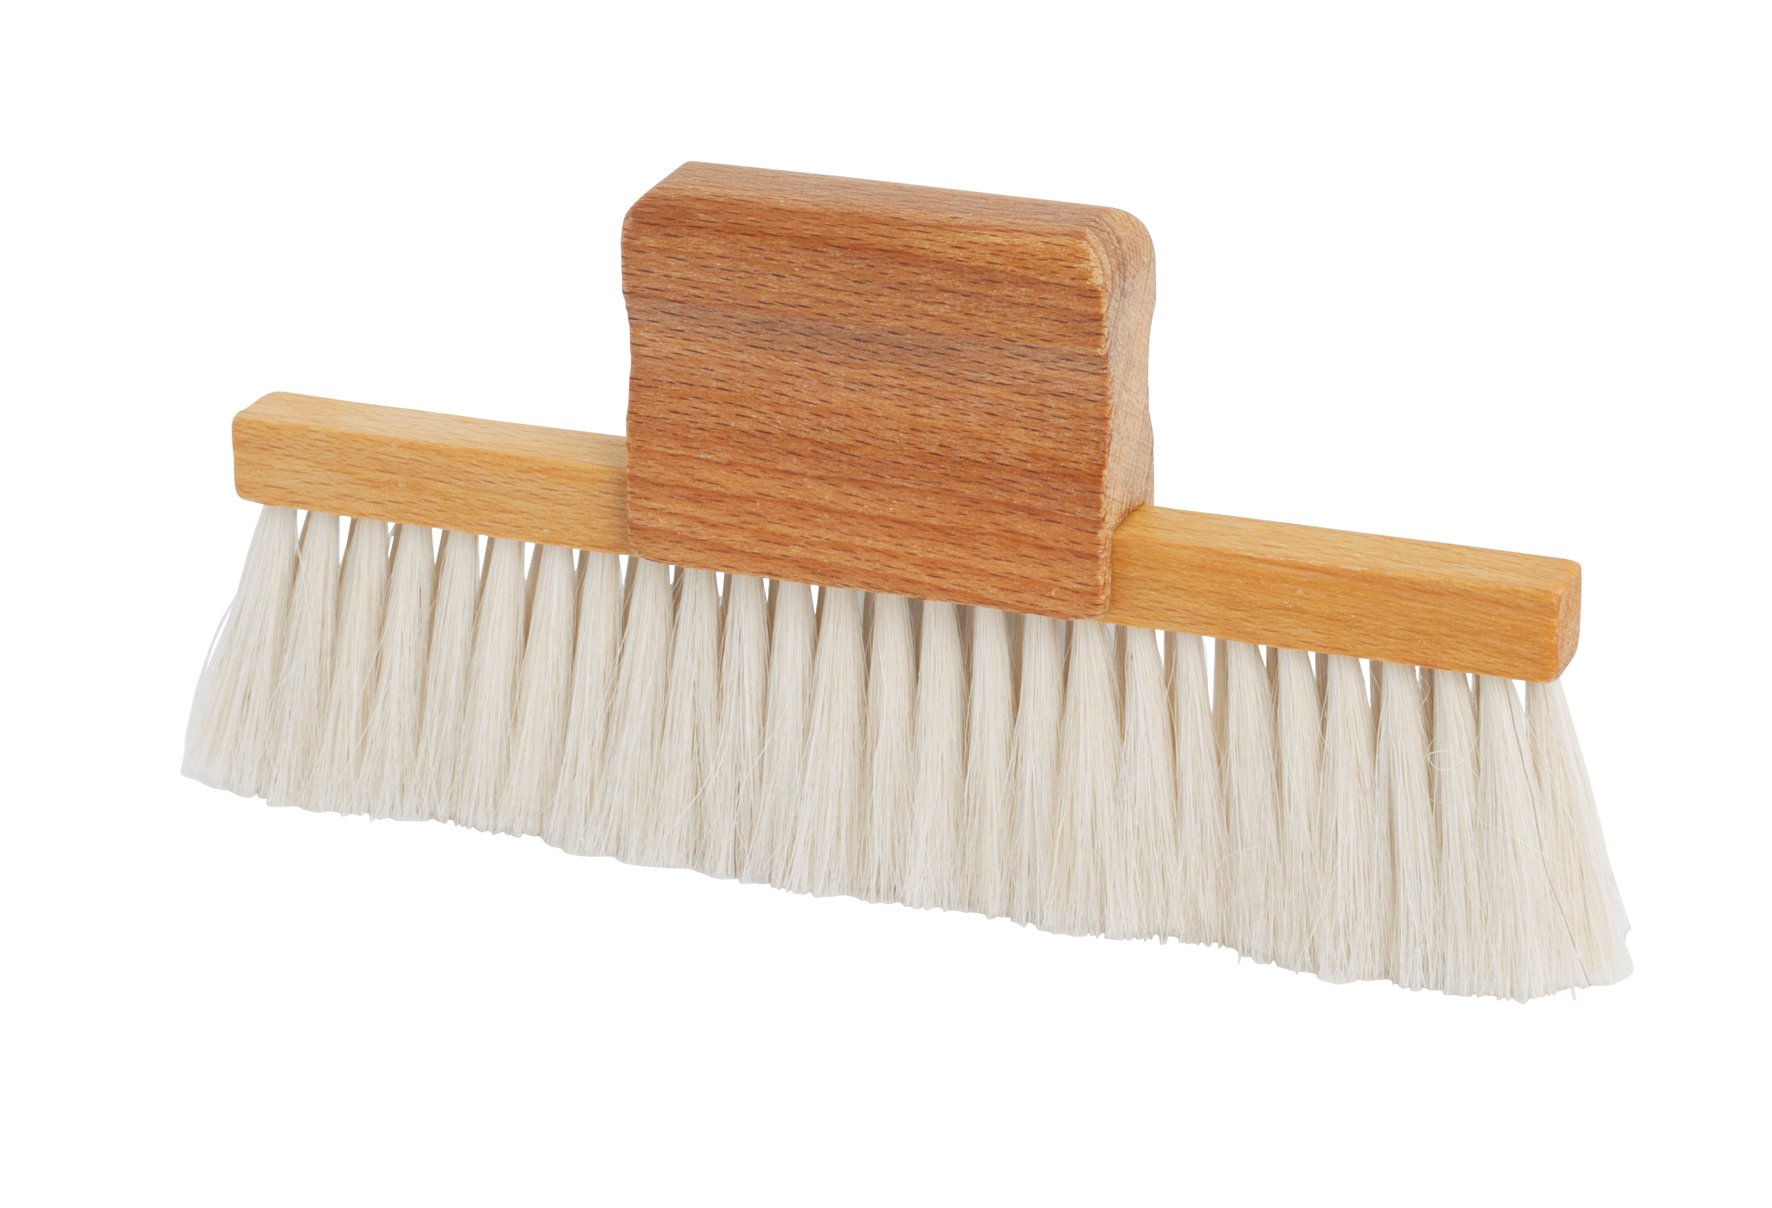 Redecker Goat Hair Table Brush with Oiled Beechwood Handle, 5-3/4 x 3-Inches by REDECKER